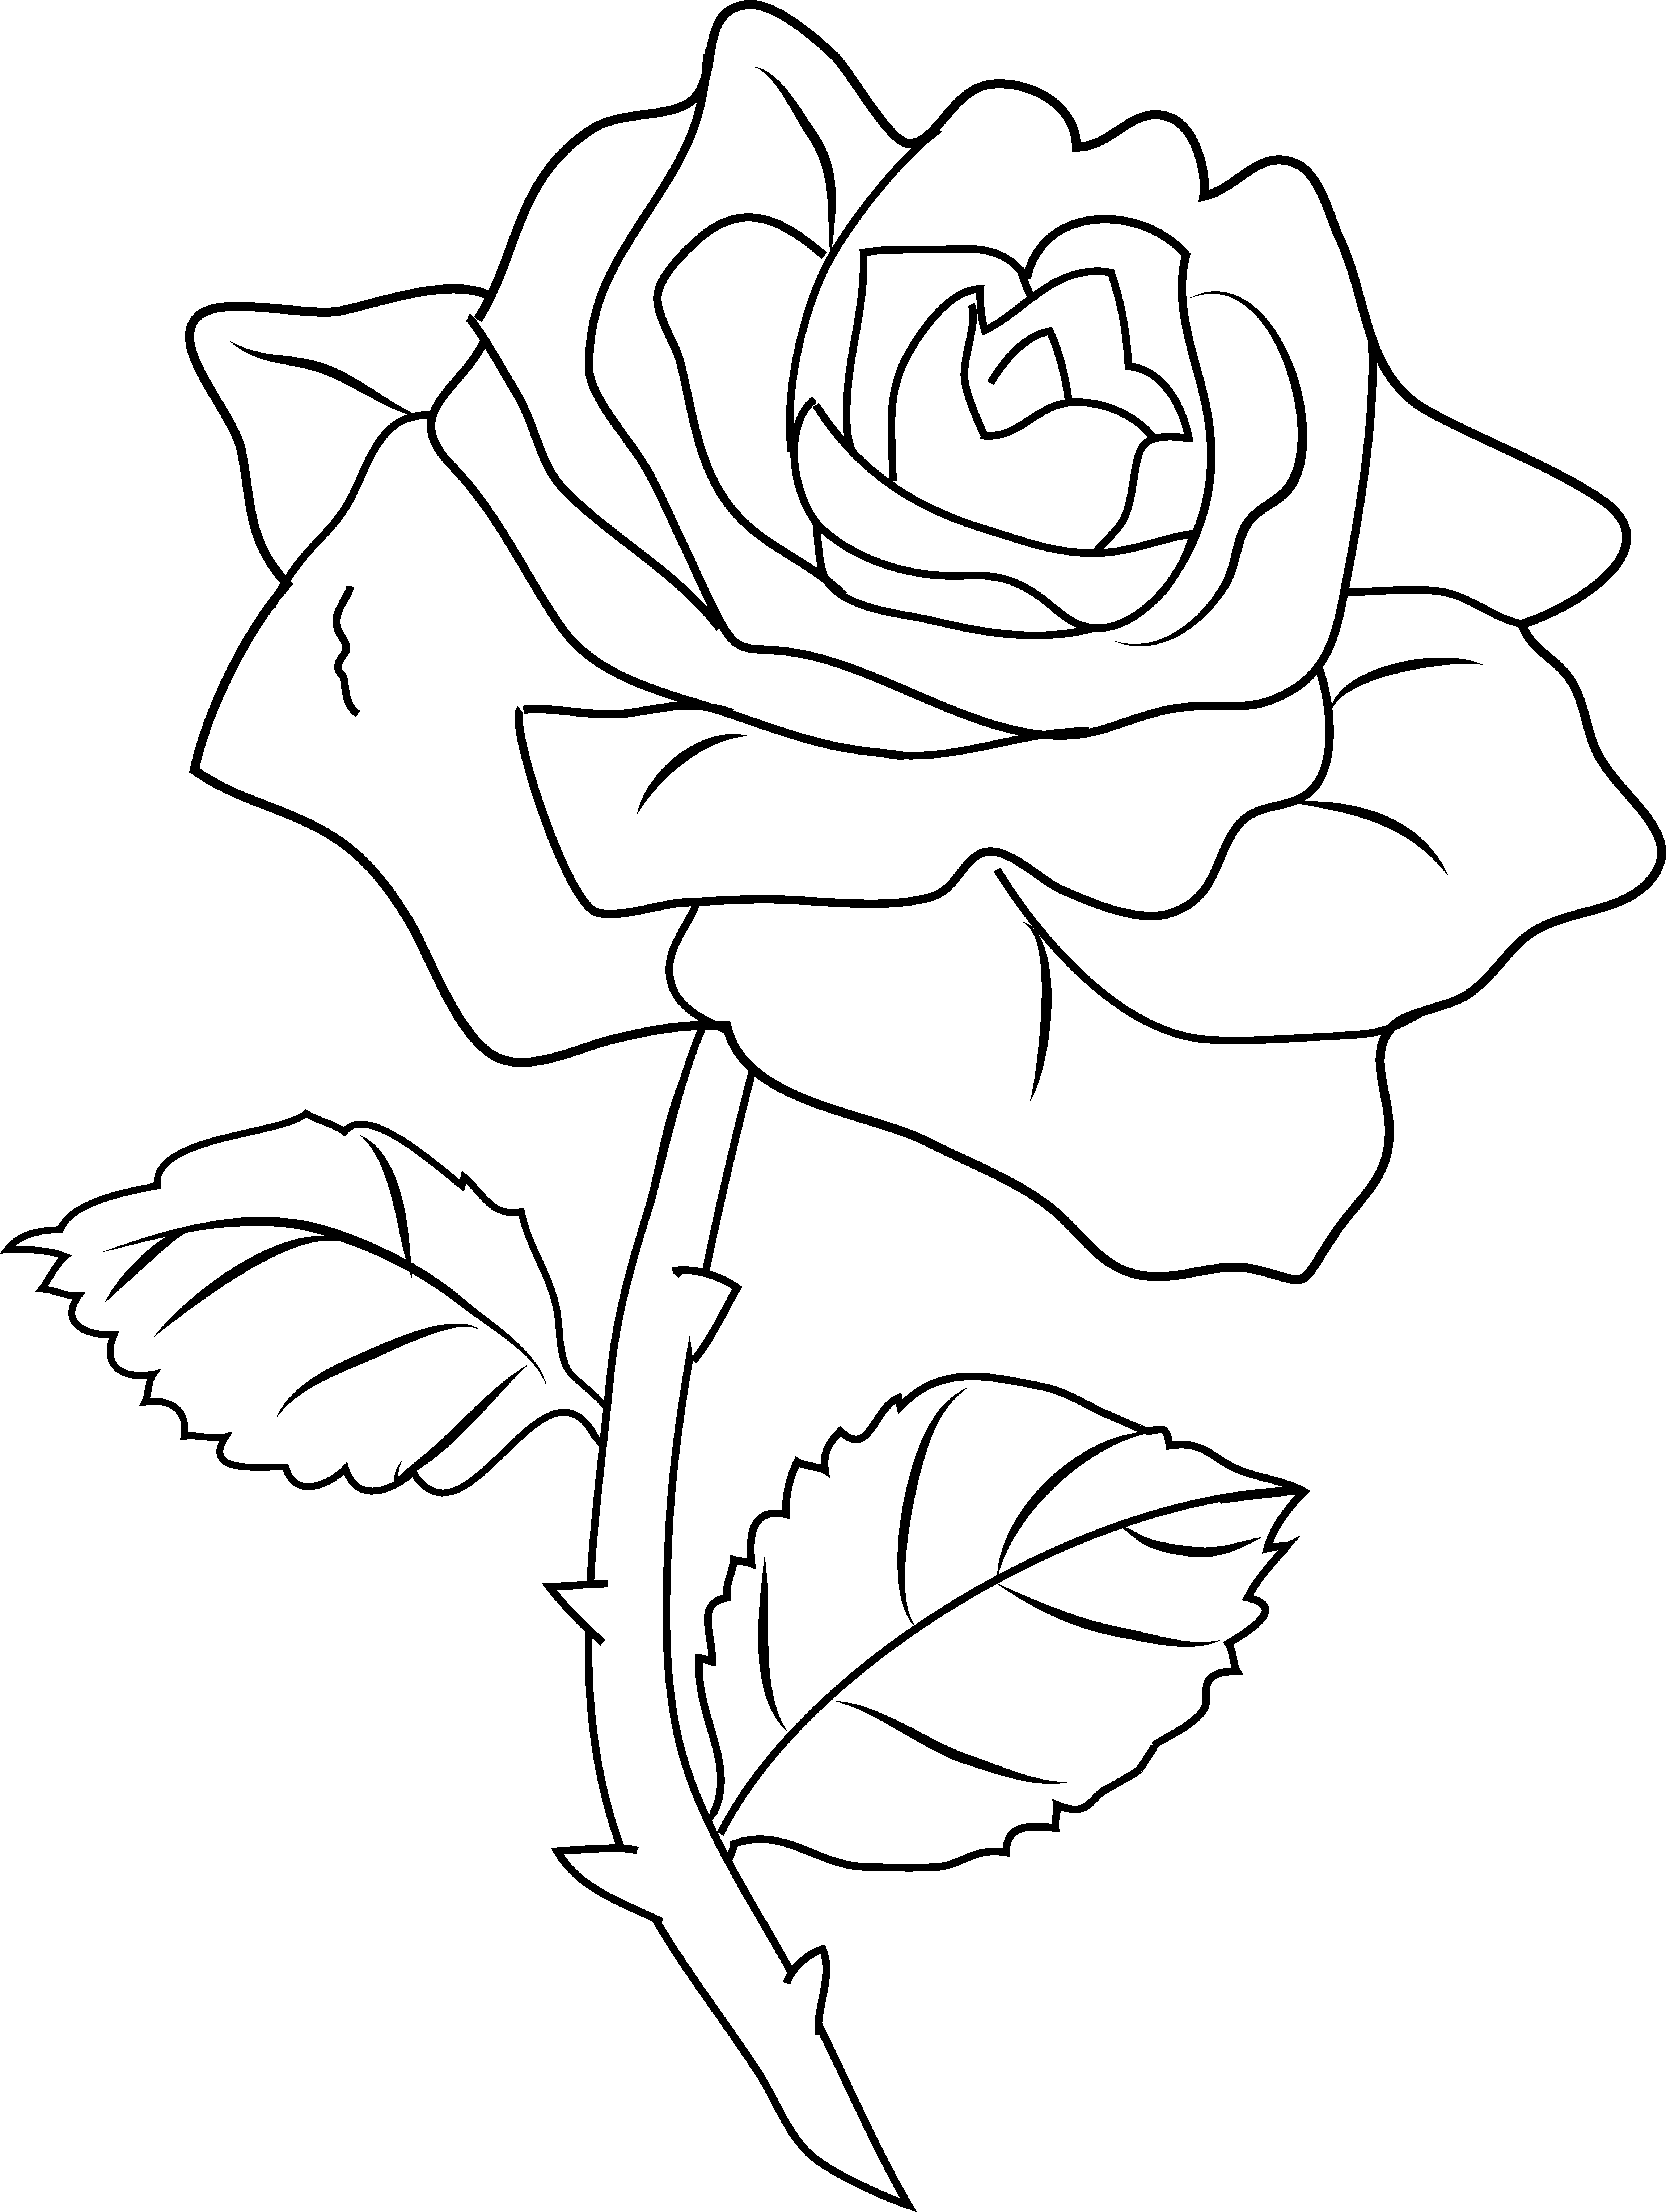 rose coloring page rose coloring page free coloring pages online page coloring rose